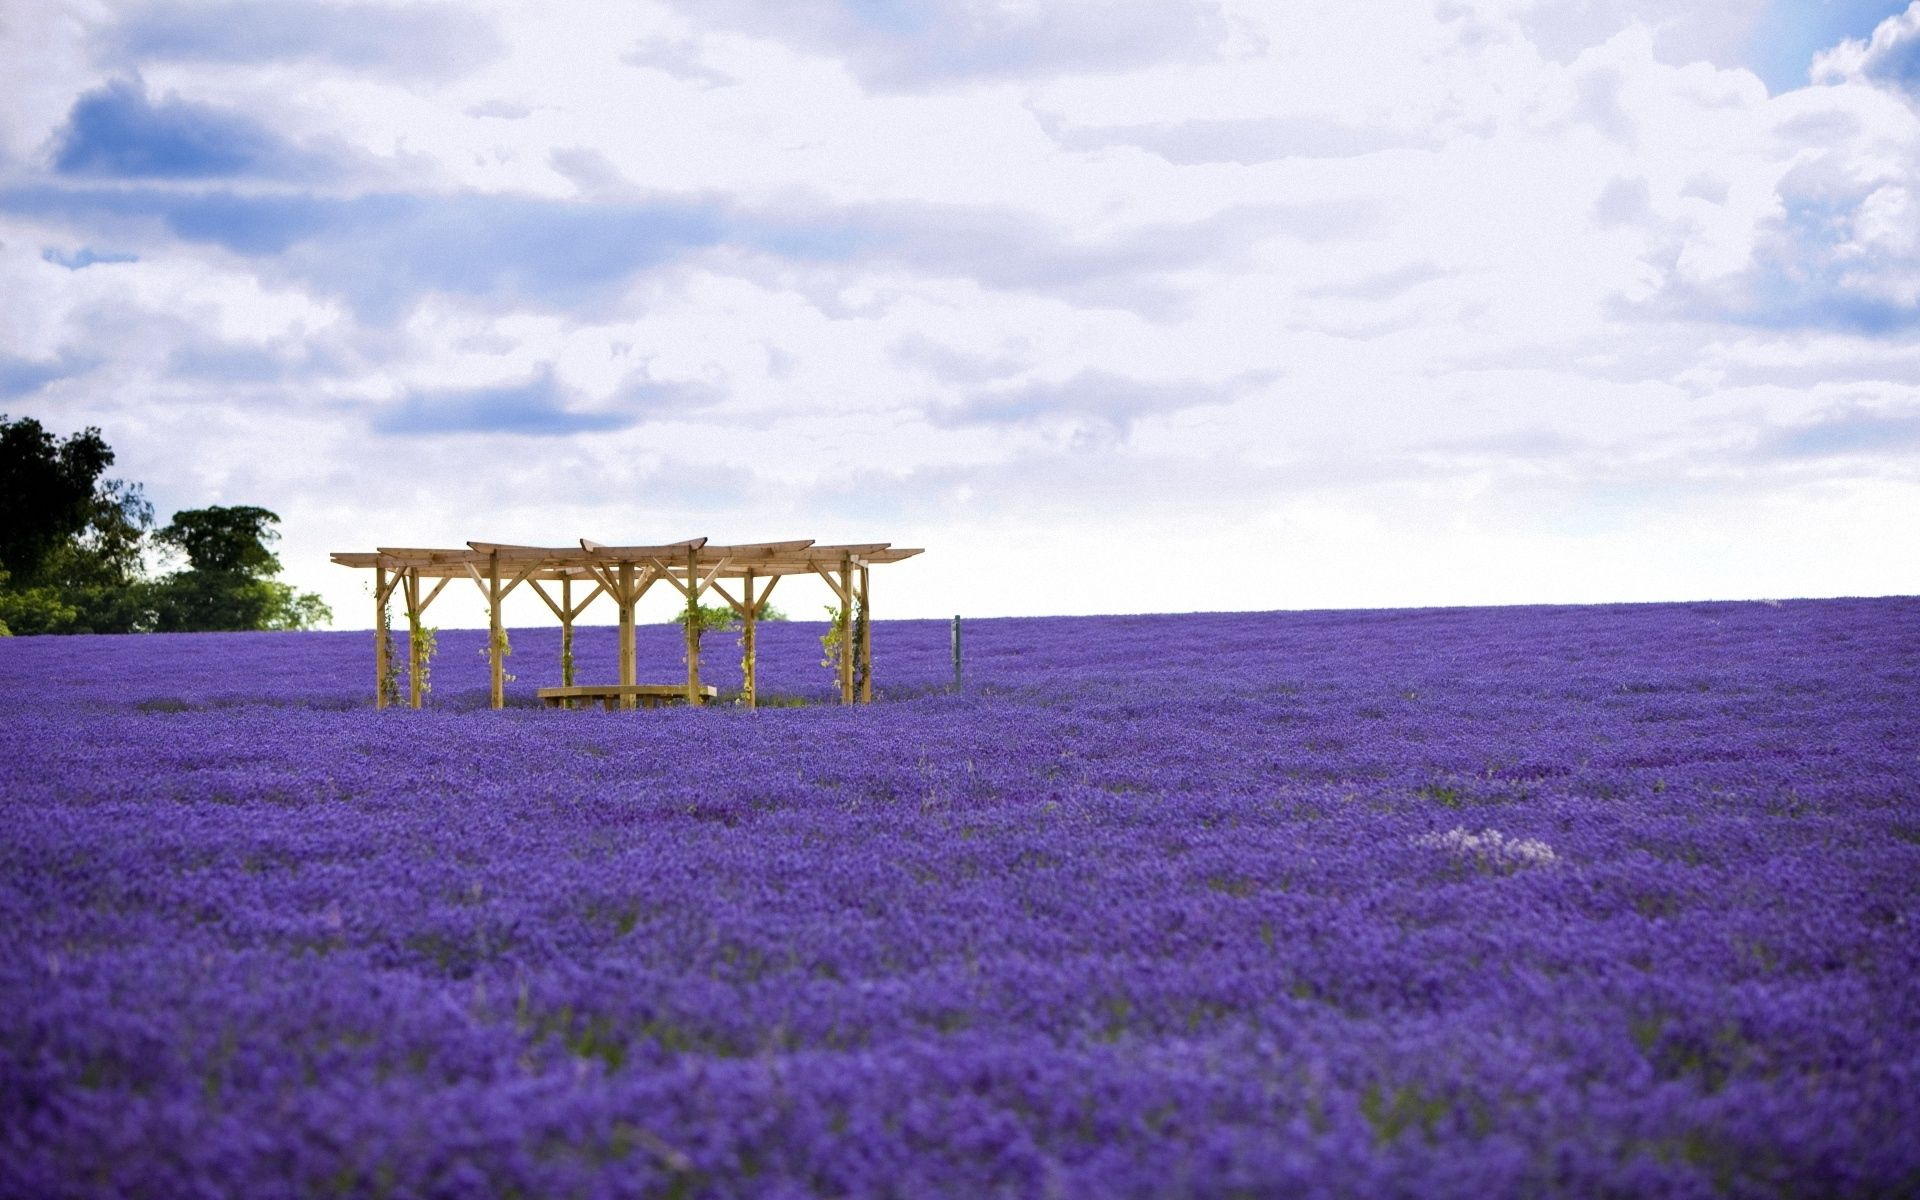 154659 download wallpaper Nature, Alcove, Bower, Field, Lilac, Flowers screensavers and pictures for free